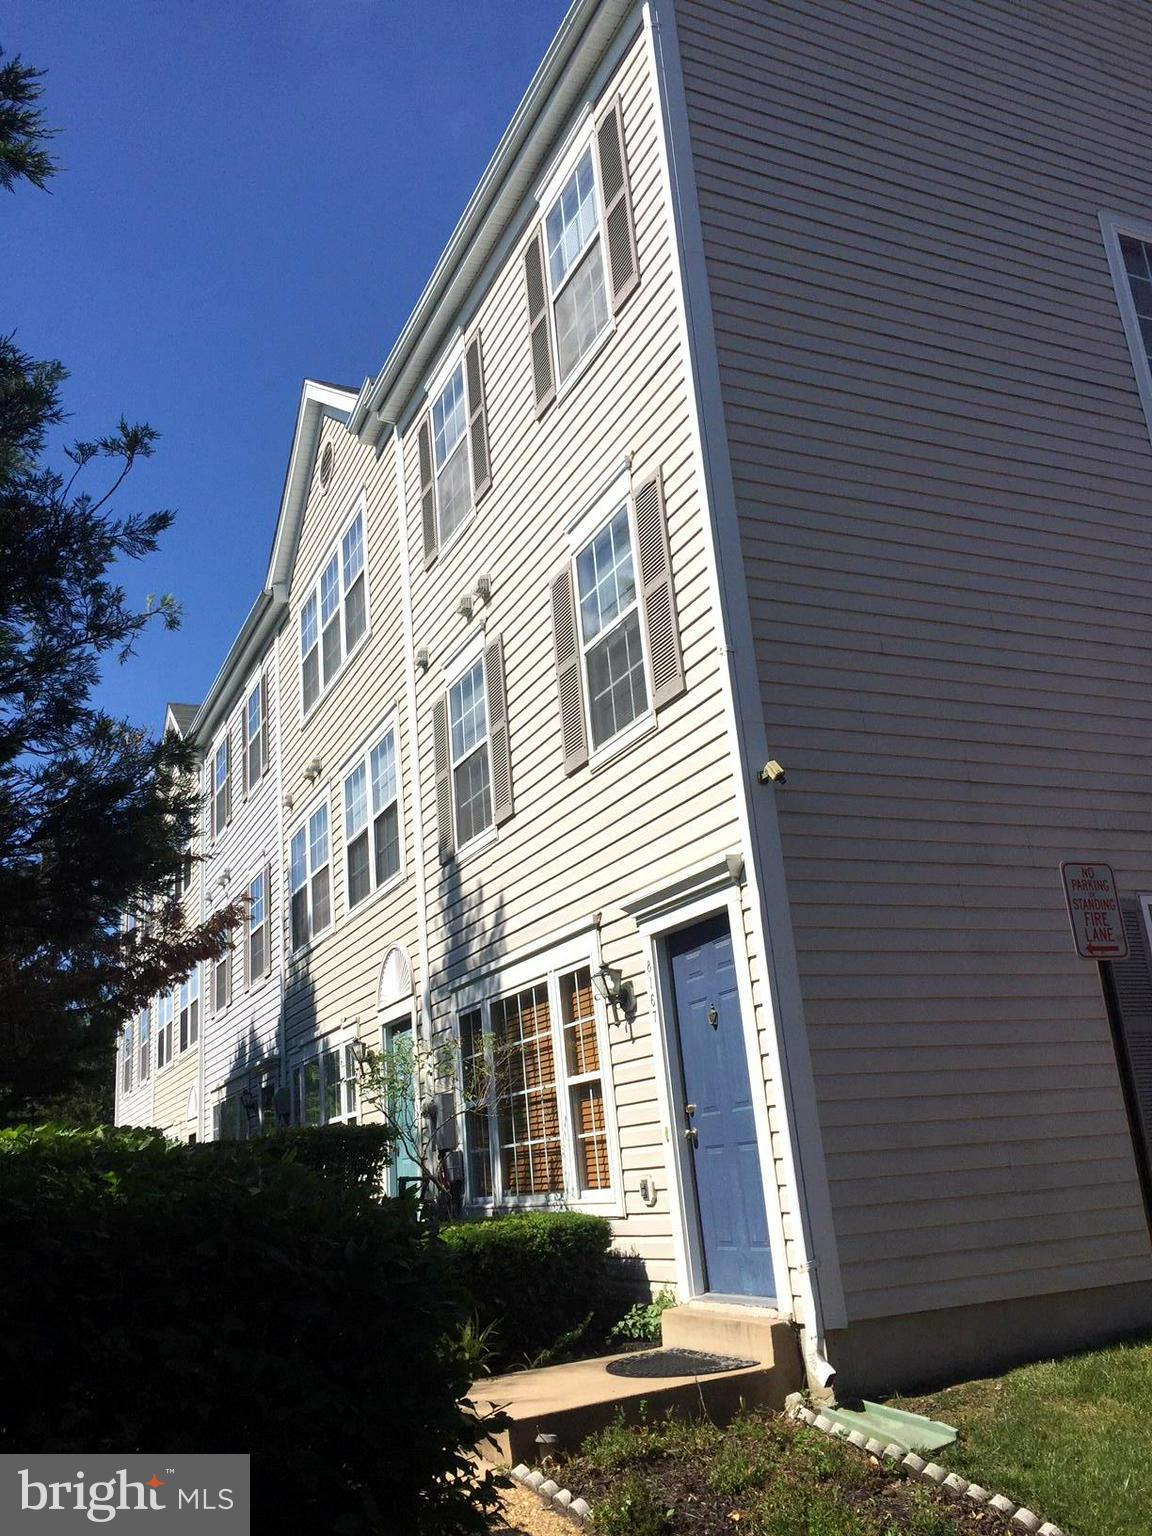 BACK ON MARKET W/BRAND NEW HVAC,fridge,main level flooring,etc(Oct2018),new carpet(spring2018).Bright End Unit Condo/Townhouse.Sought after South County School district.Great neighborhood.Close to I95 exit & Lorton VRE for easy commute. 3 good size bdrms w/ double door closets. Vaulted ceilings. MBR has spacious ensuite full bath & wall-to-wall His & Hers Closets.So much for amazing price!